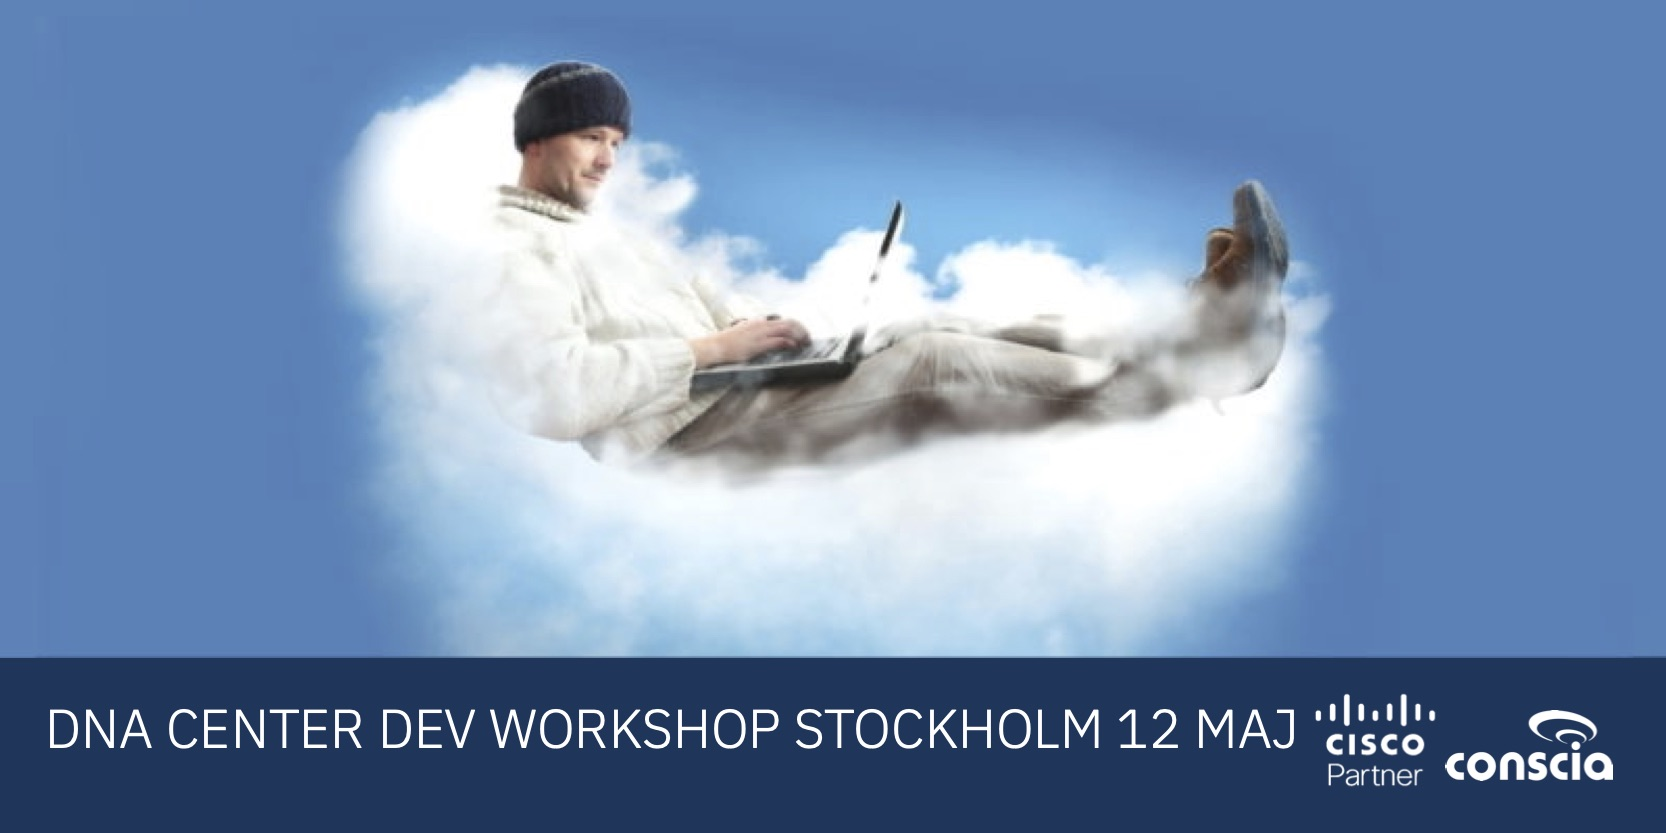 Kostnadsfri heldagsworkshop med Conscia och Cisco: DNA Center Dev